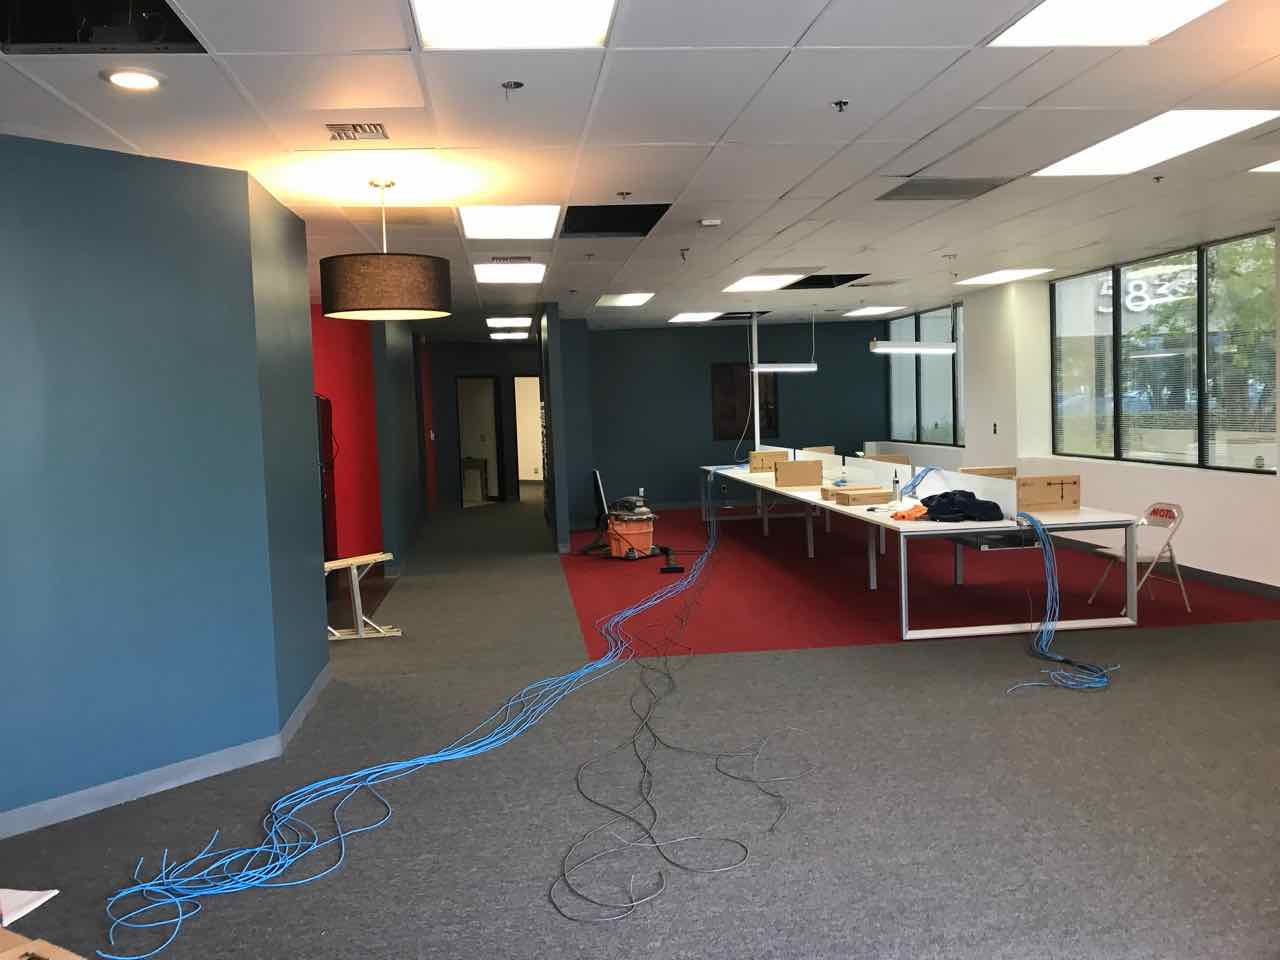 Office remodel in Los Angeles, CA. Major tenant improvement: demolition, walls, electrical, acoustic ceiling (t-bar and ceiling tiles), carpet, painting, and floor plan redesign.